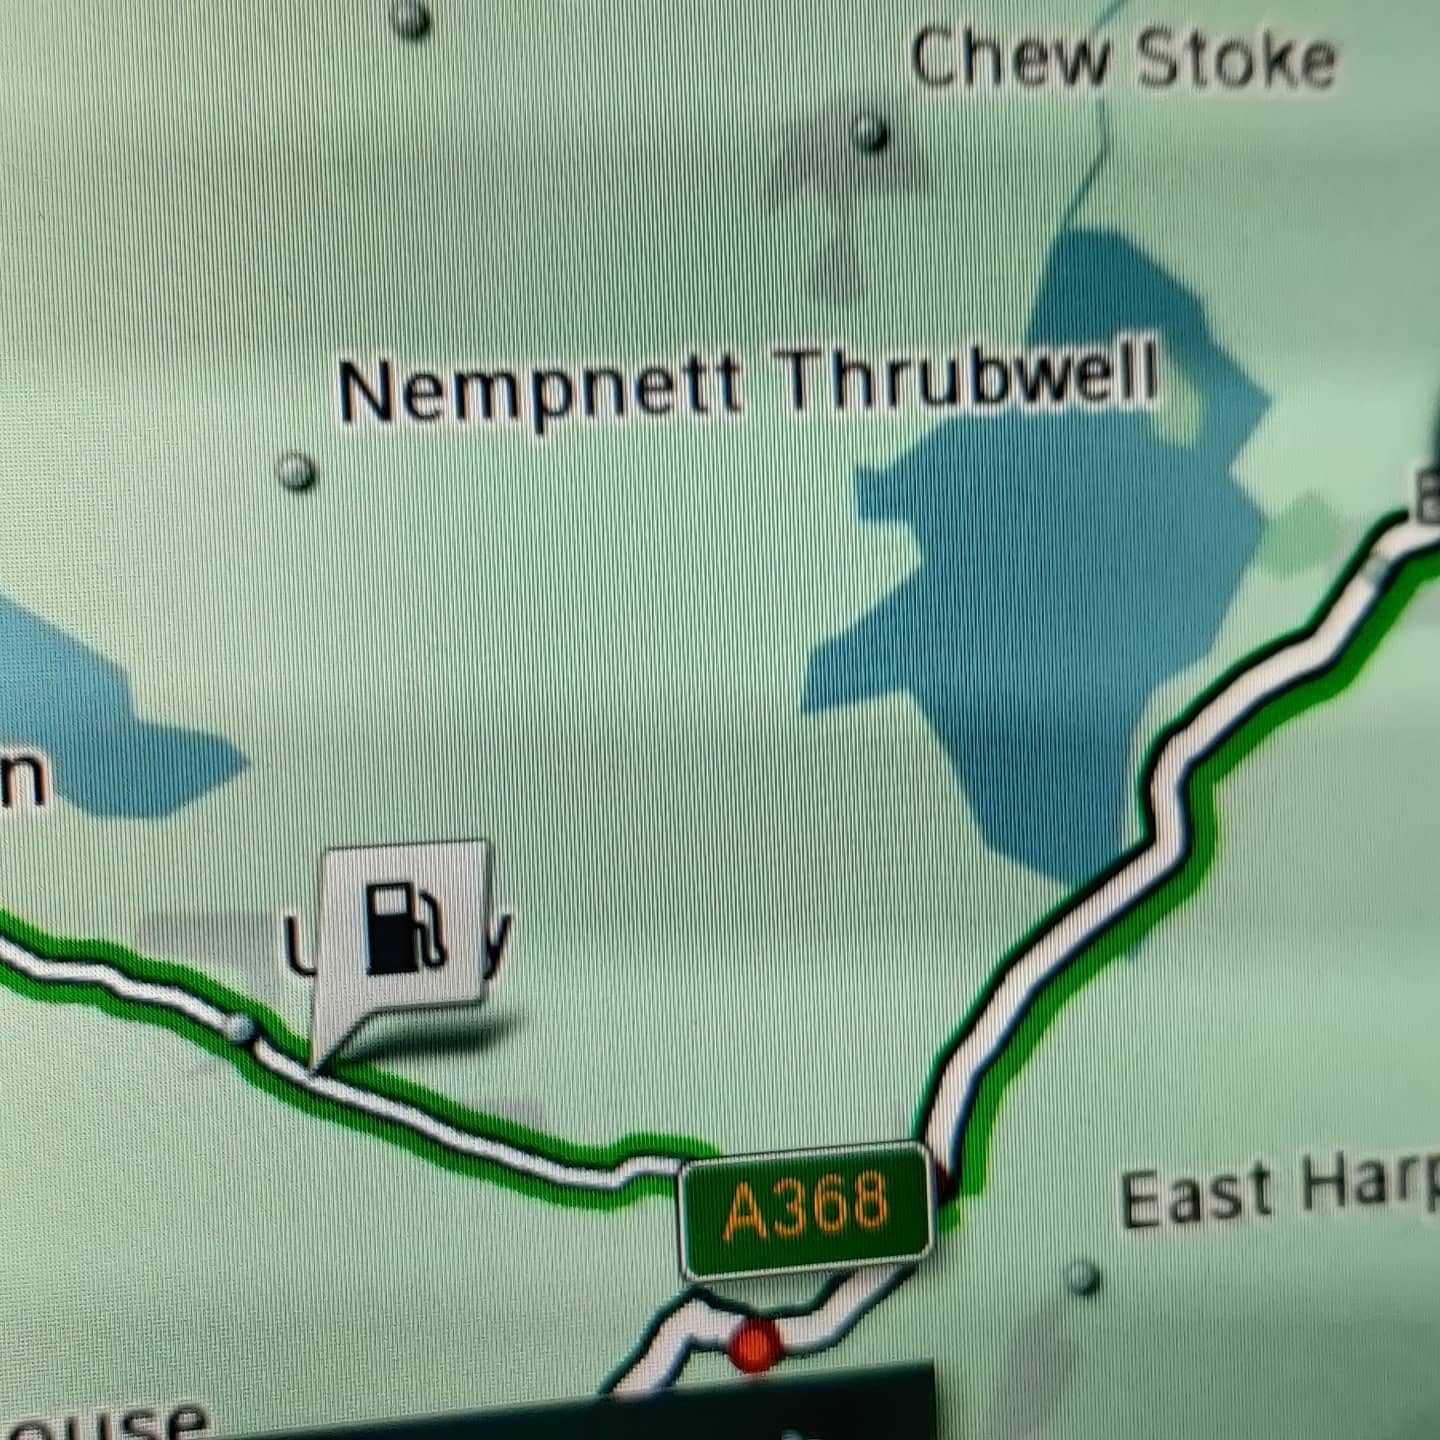 I was Today Years Old when I learned that a place existed in England called Nempnett Thrubwell. Sounds like someone who invented an early version of the self-adhesive postage stamp, or something.